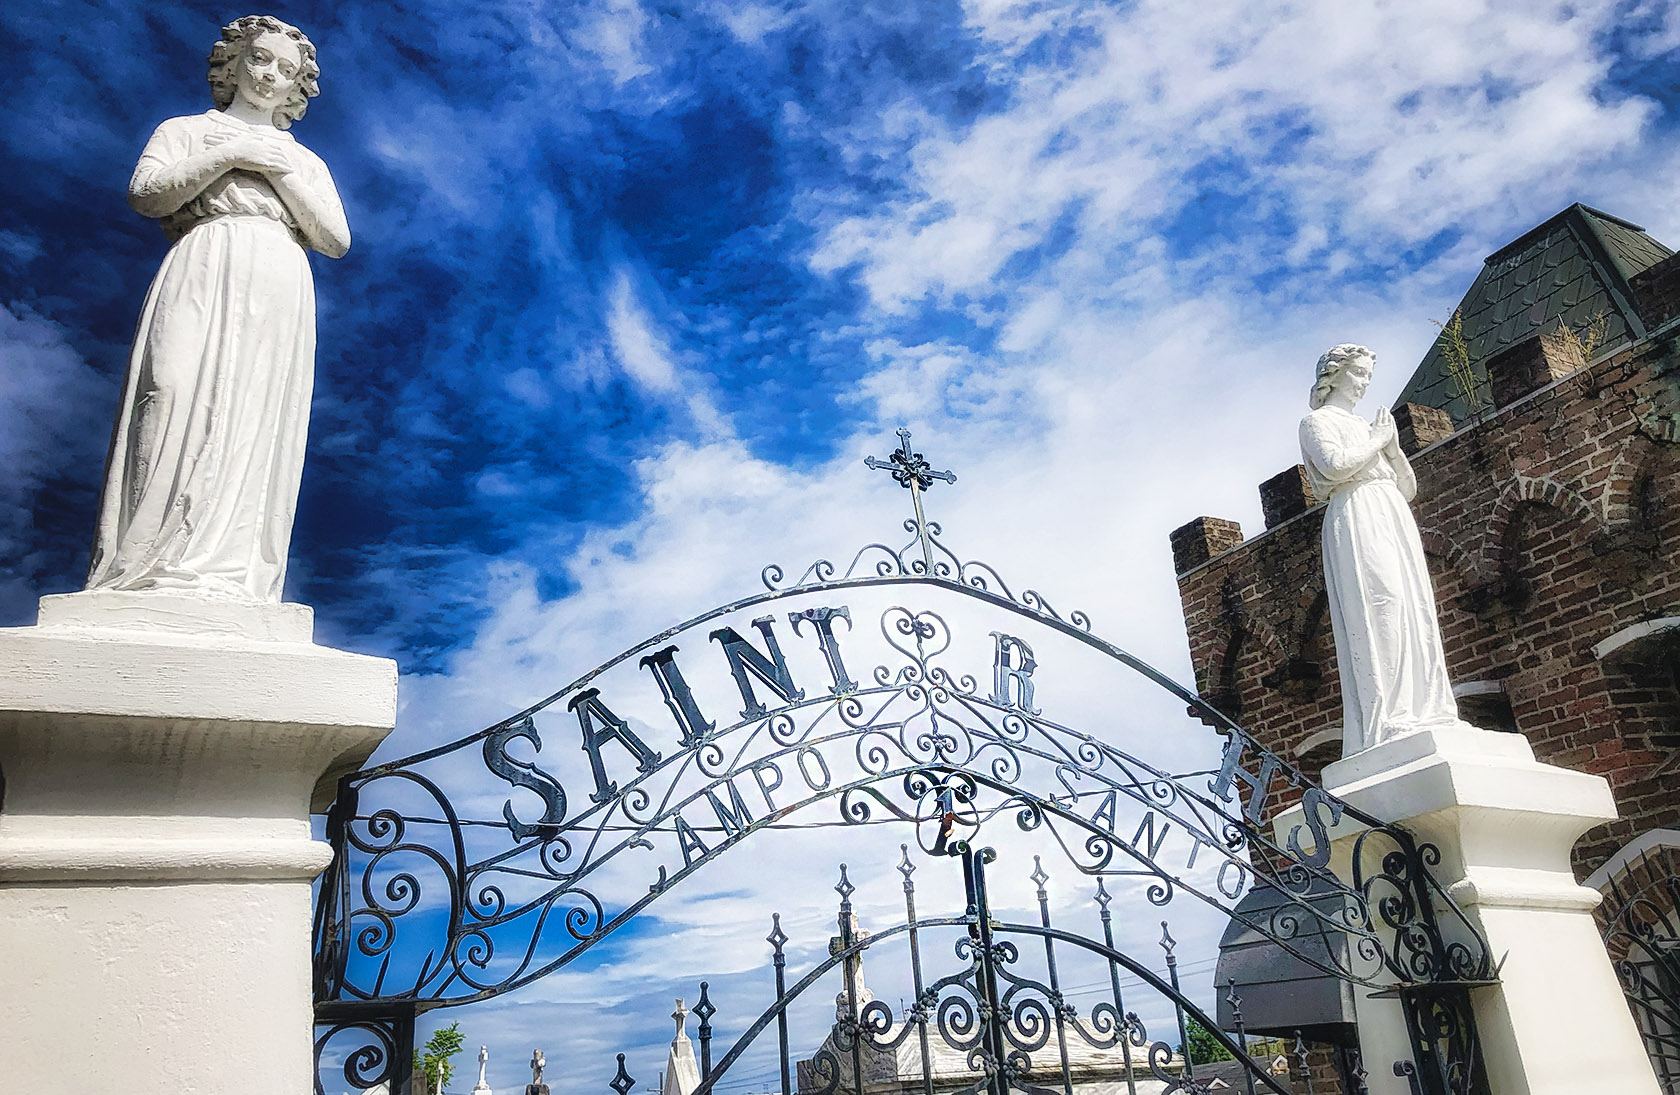 St. Roch Cemetery New Orleans - nola places photo - august 2020